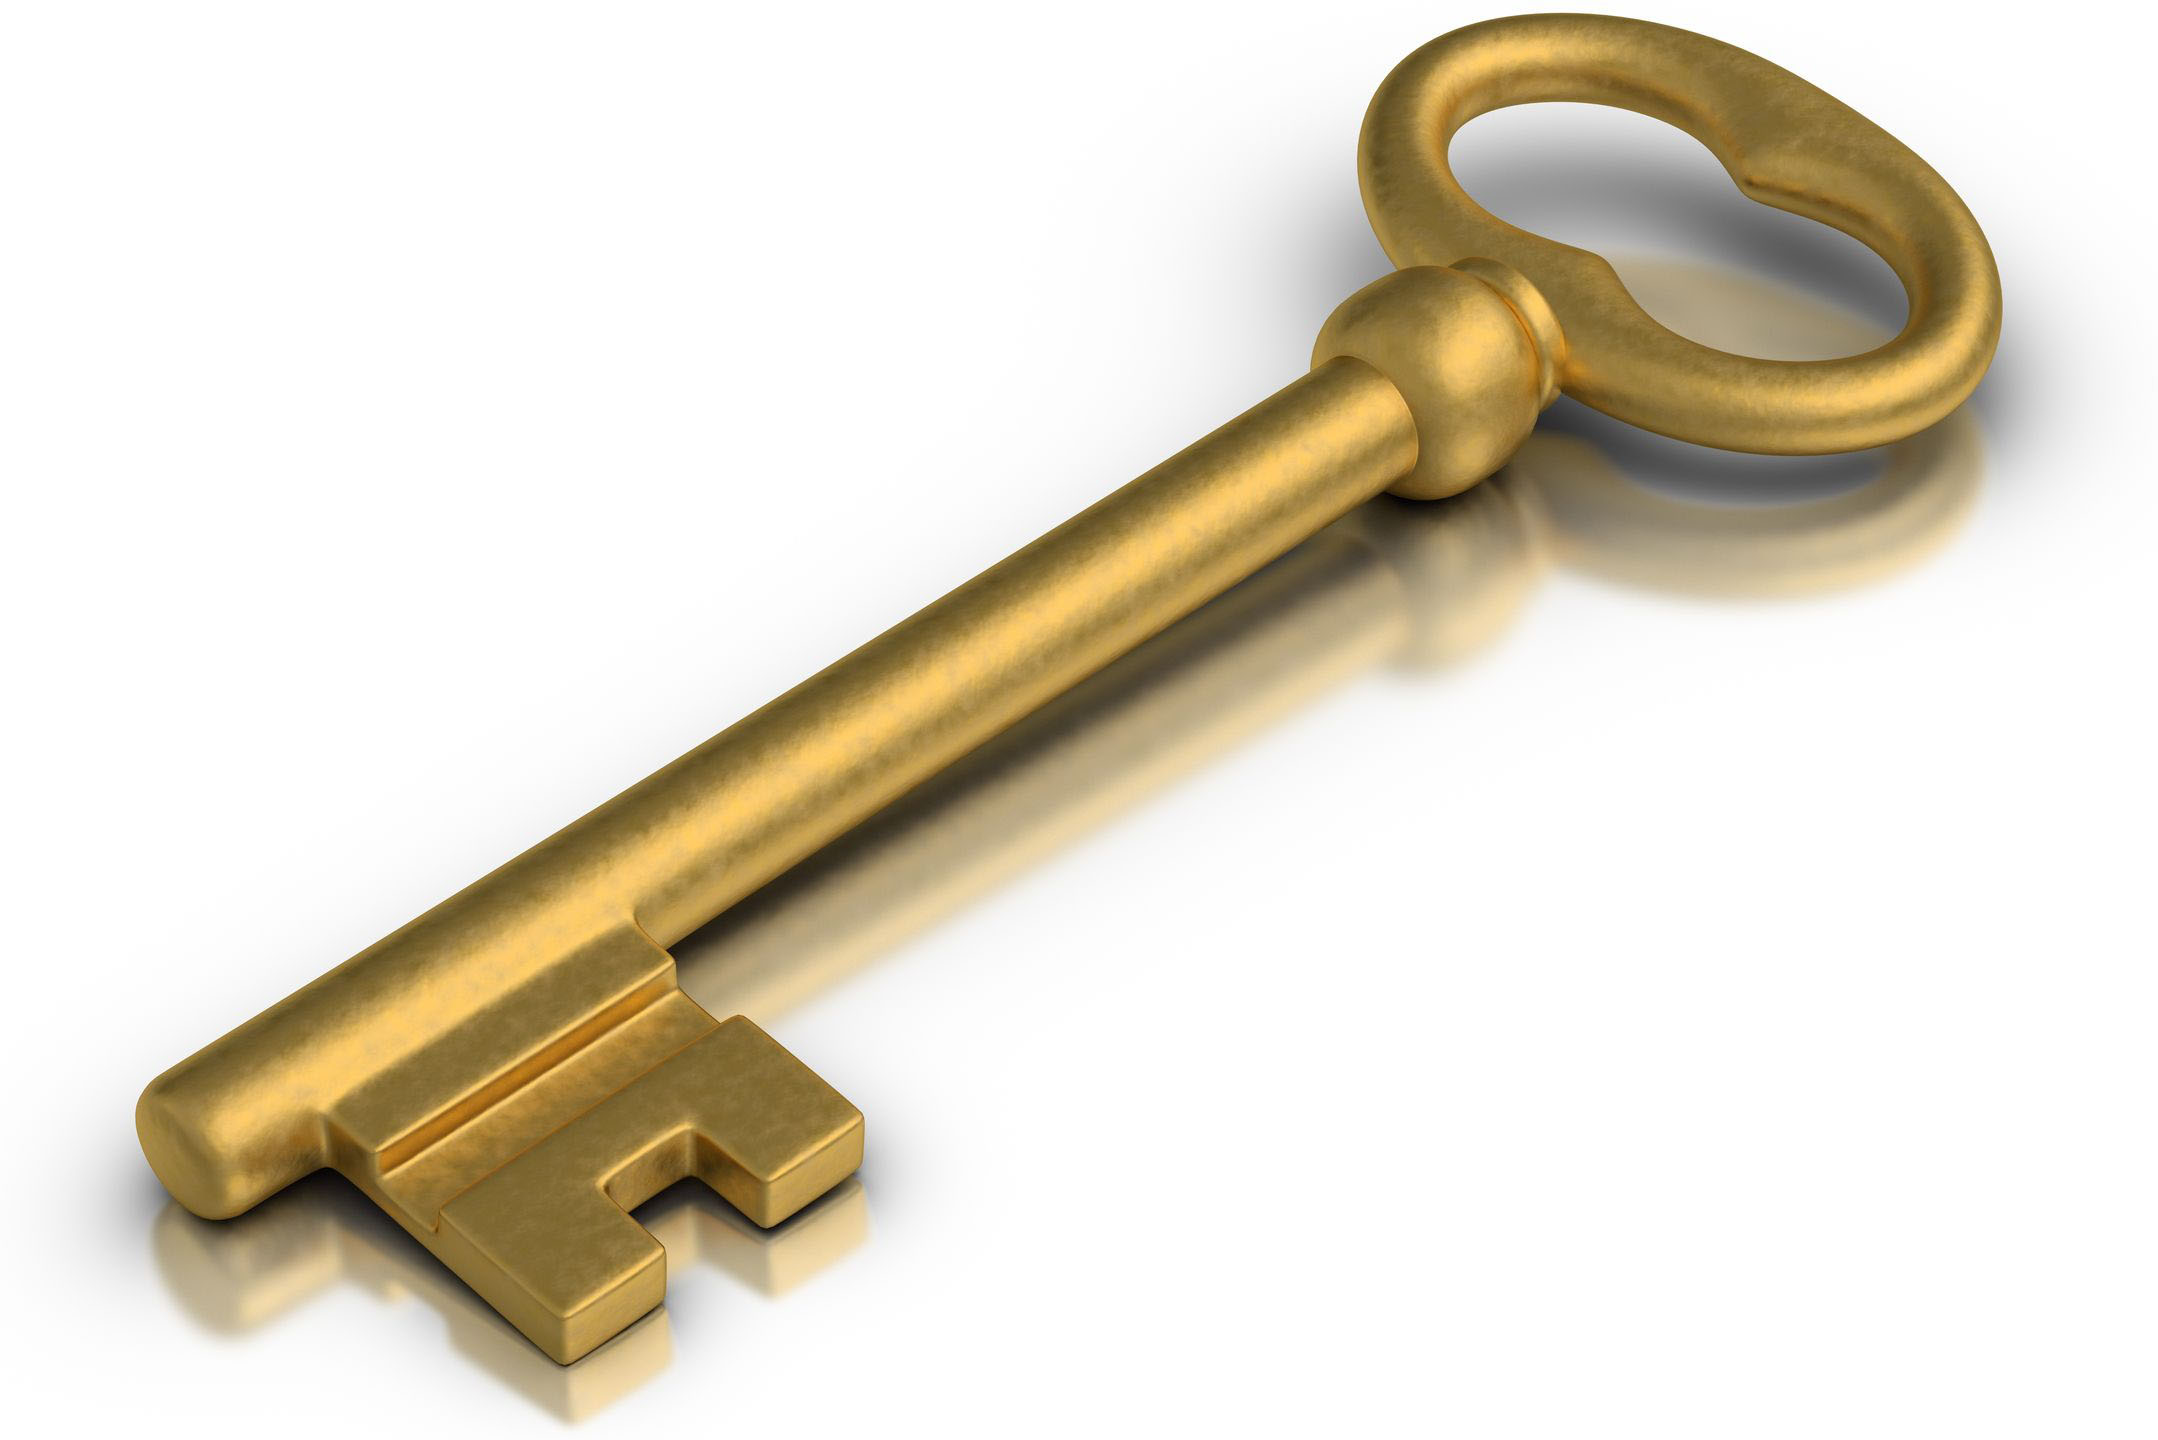 Golden Key - LIBERTY (SECURITY PRIVACY SAFETY) FREE WILL - UNIVERSAL SPENDING AUTHORITY - PRIVATE PROPERTY - FREE LAND - THERE IS NO GOVERNMENT - A GUARANTEED INCOME - NOW YOU OWN YOUR HOME - NOW YOU HAVE AN INCOME